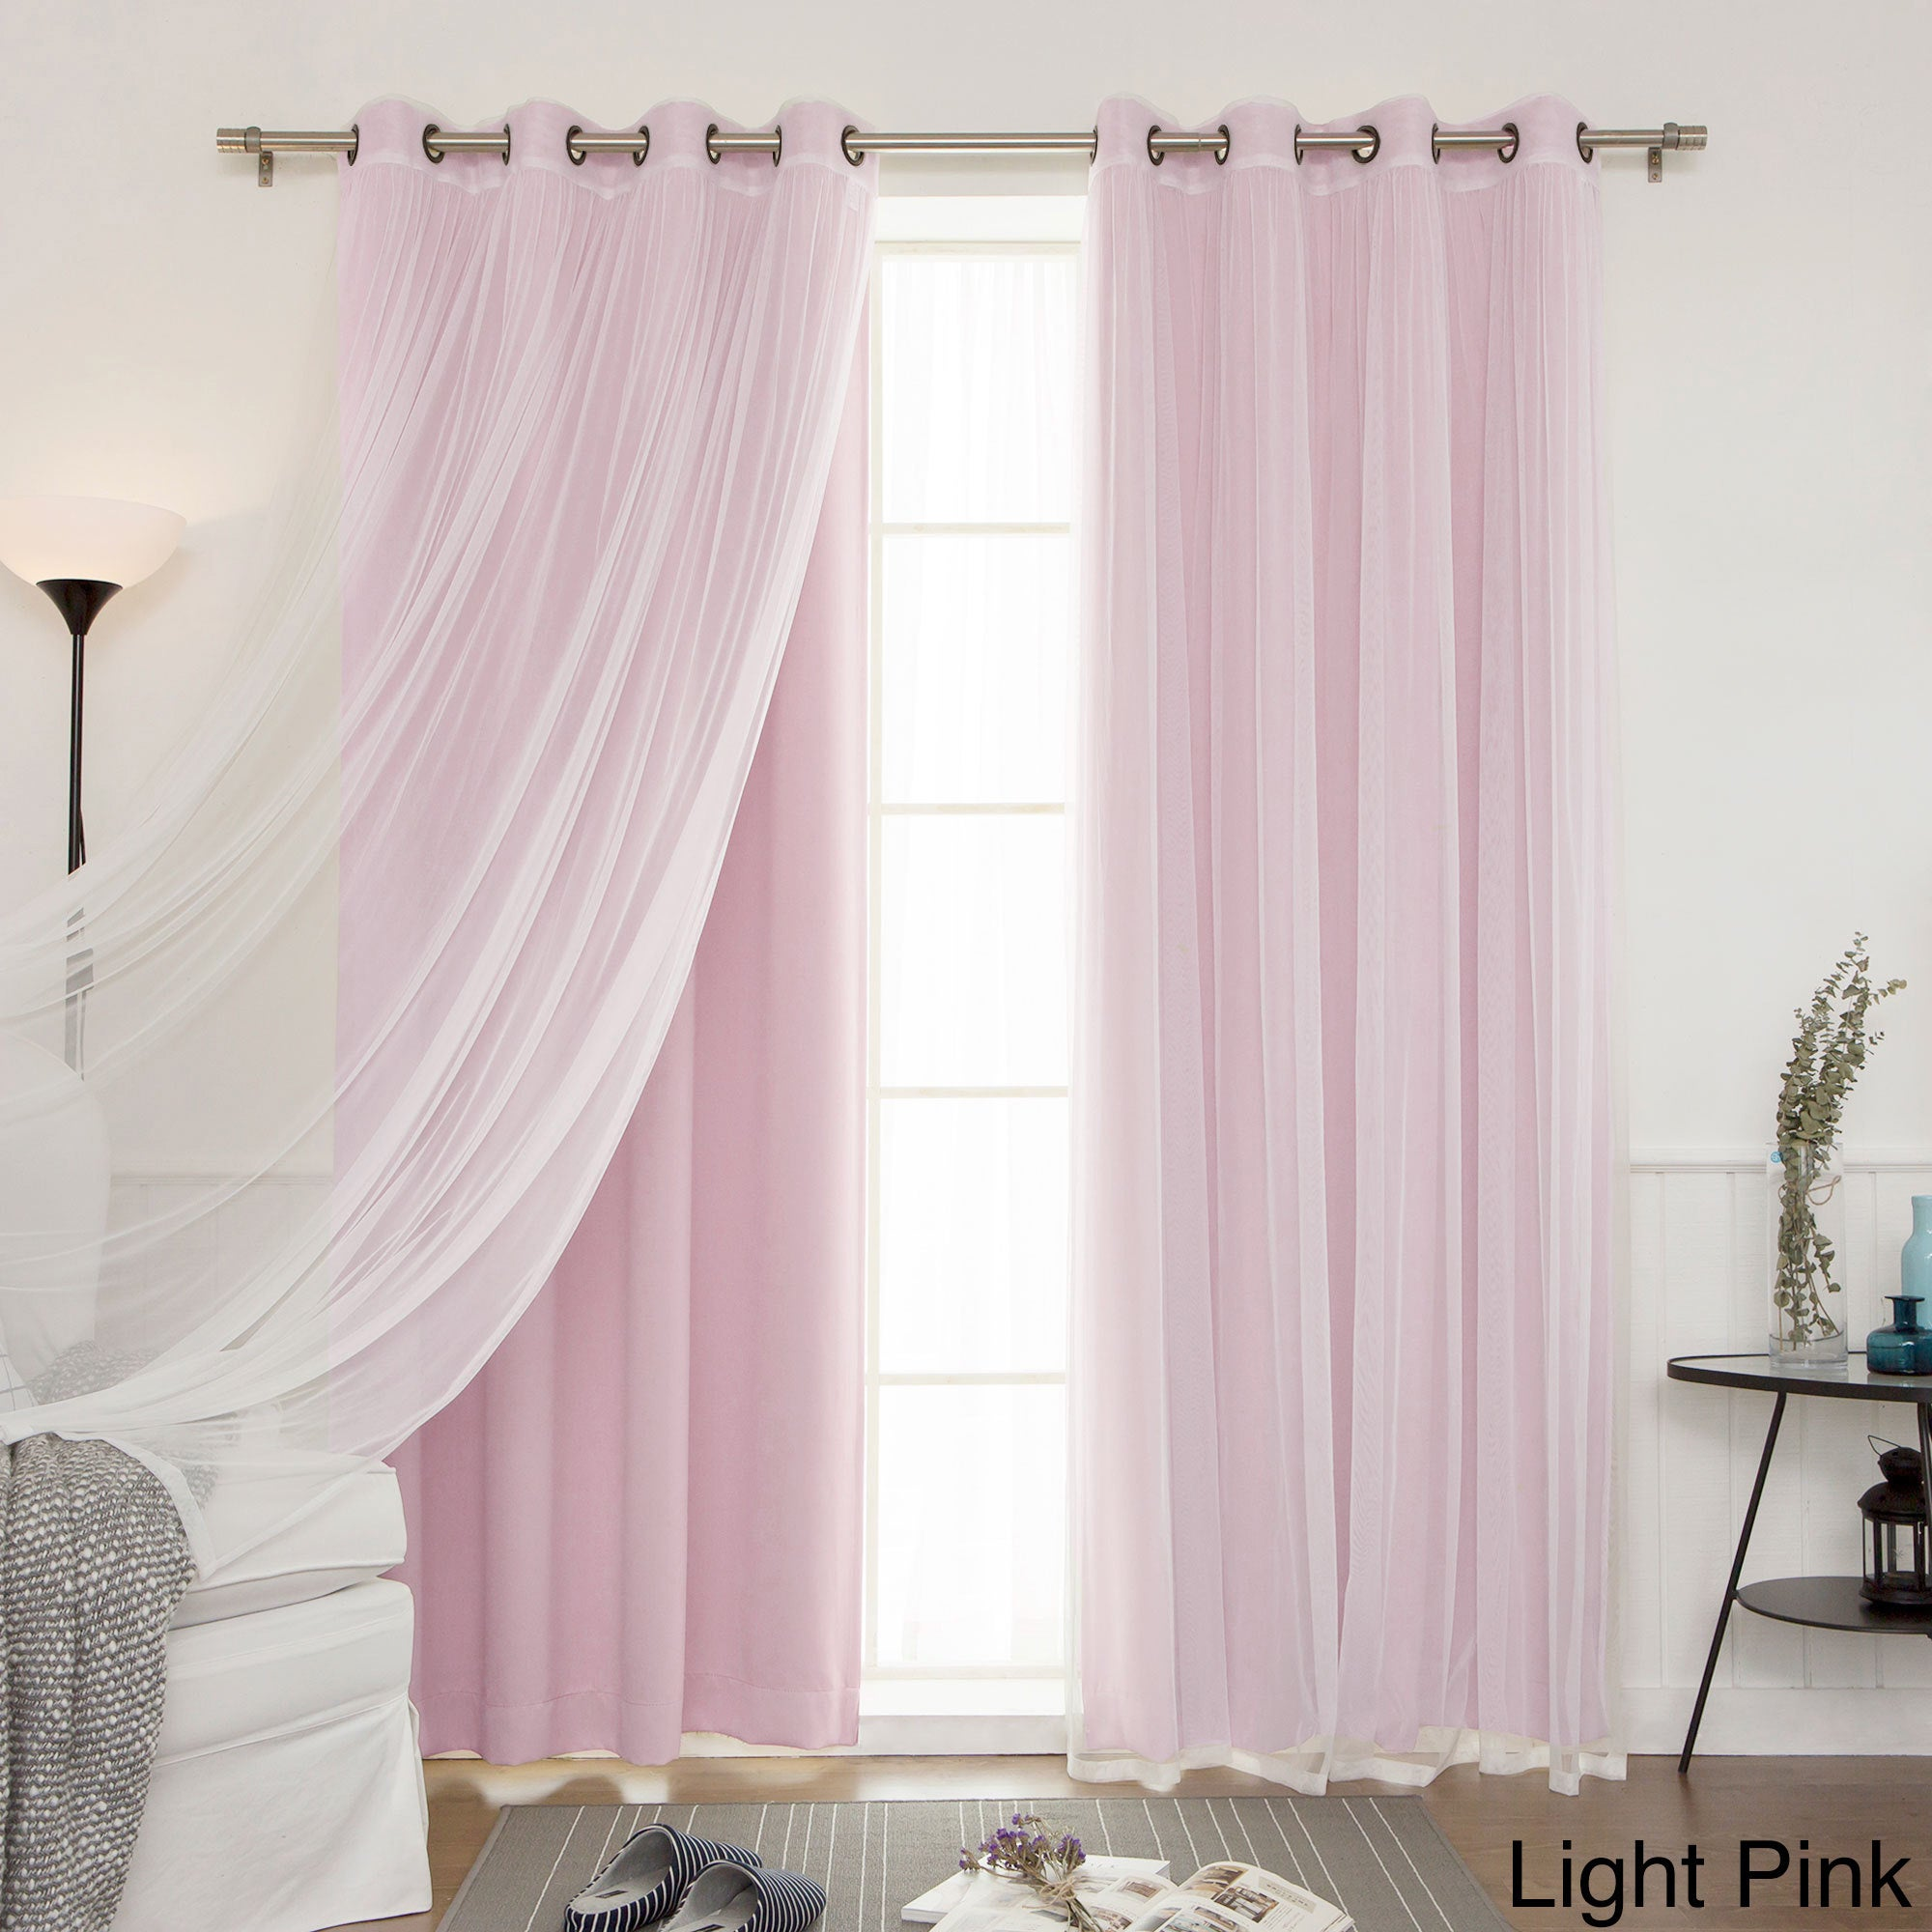 standard solid drapes light coral inch pink carousel length panel large designs lining drape width